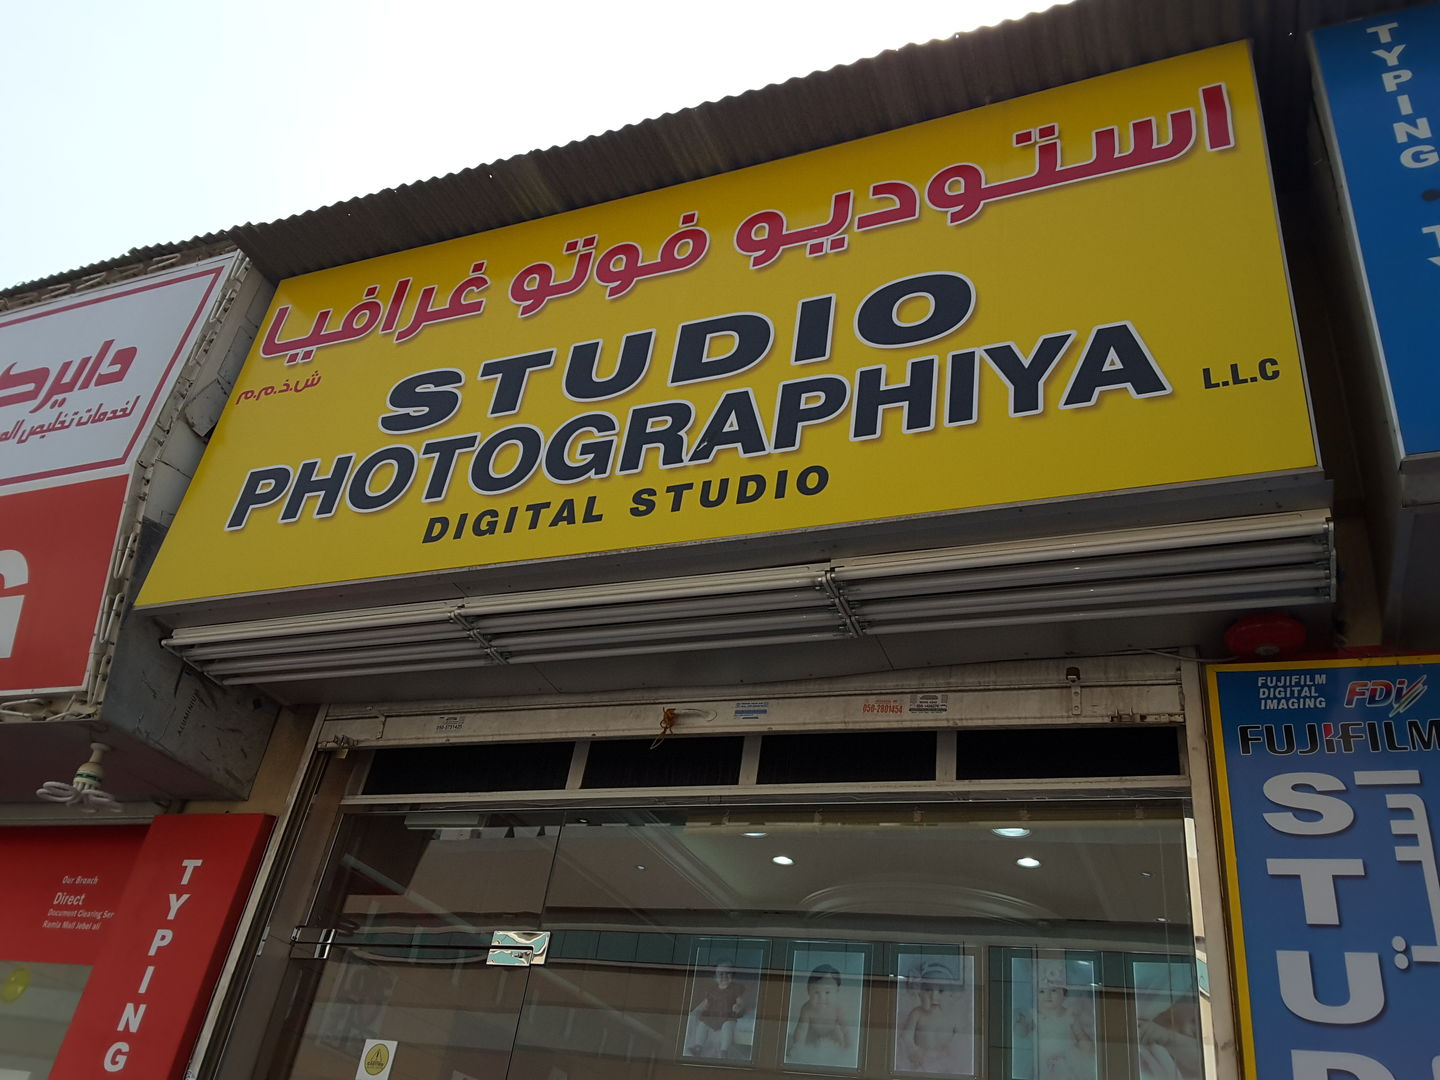 HiDubai-business-studio-photographiya-vocational-services-art-photography-services-al-rashidiya-dubai-2